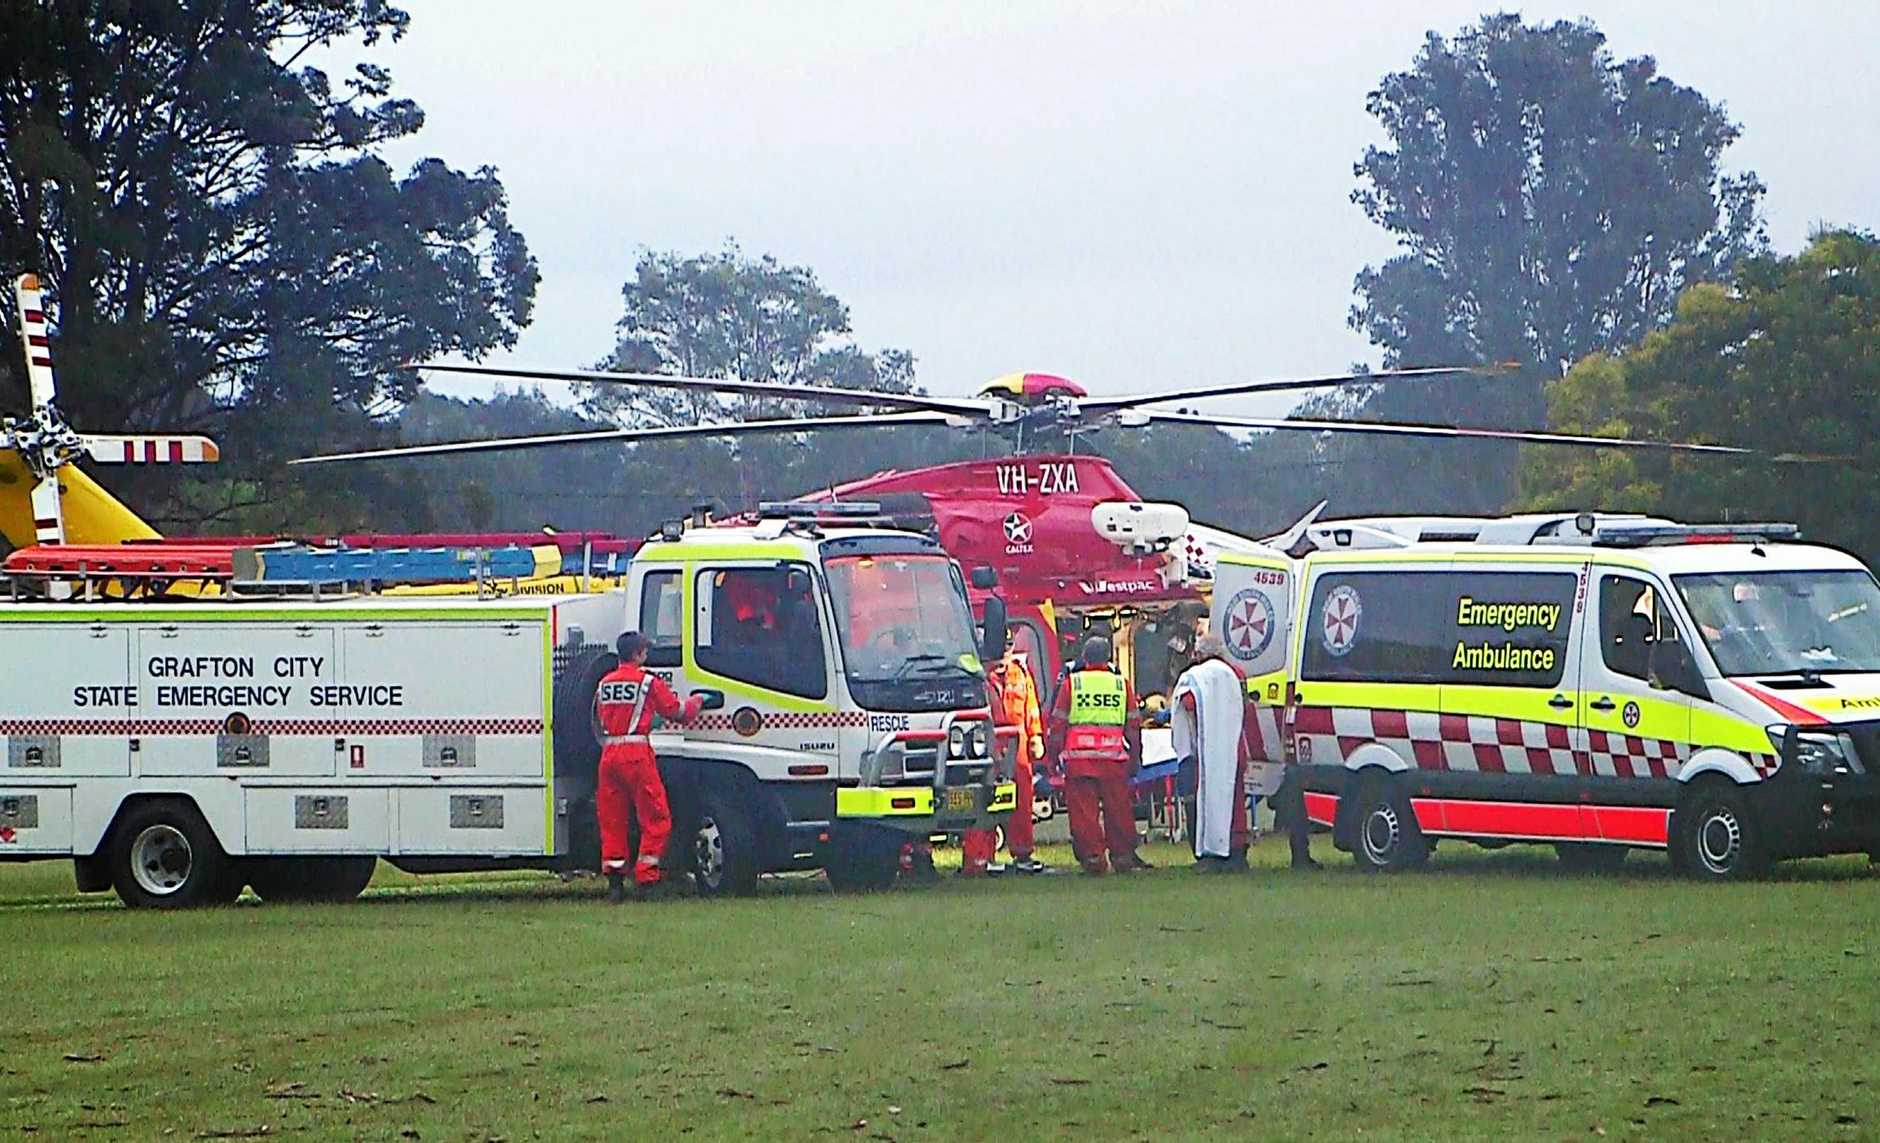 Emergency services responded to an incident at Clouds Creek, 60km west of Grafton on Armidale Road.